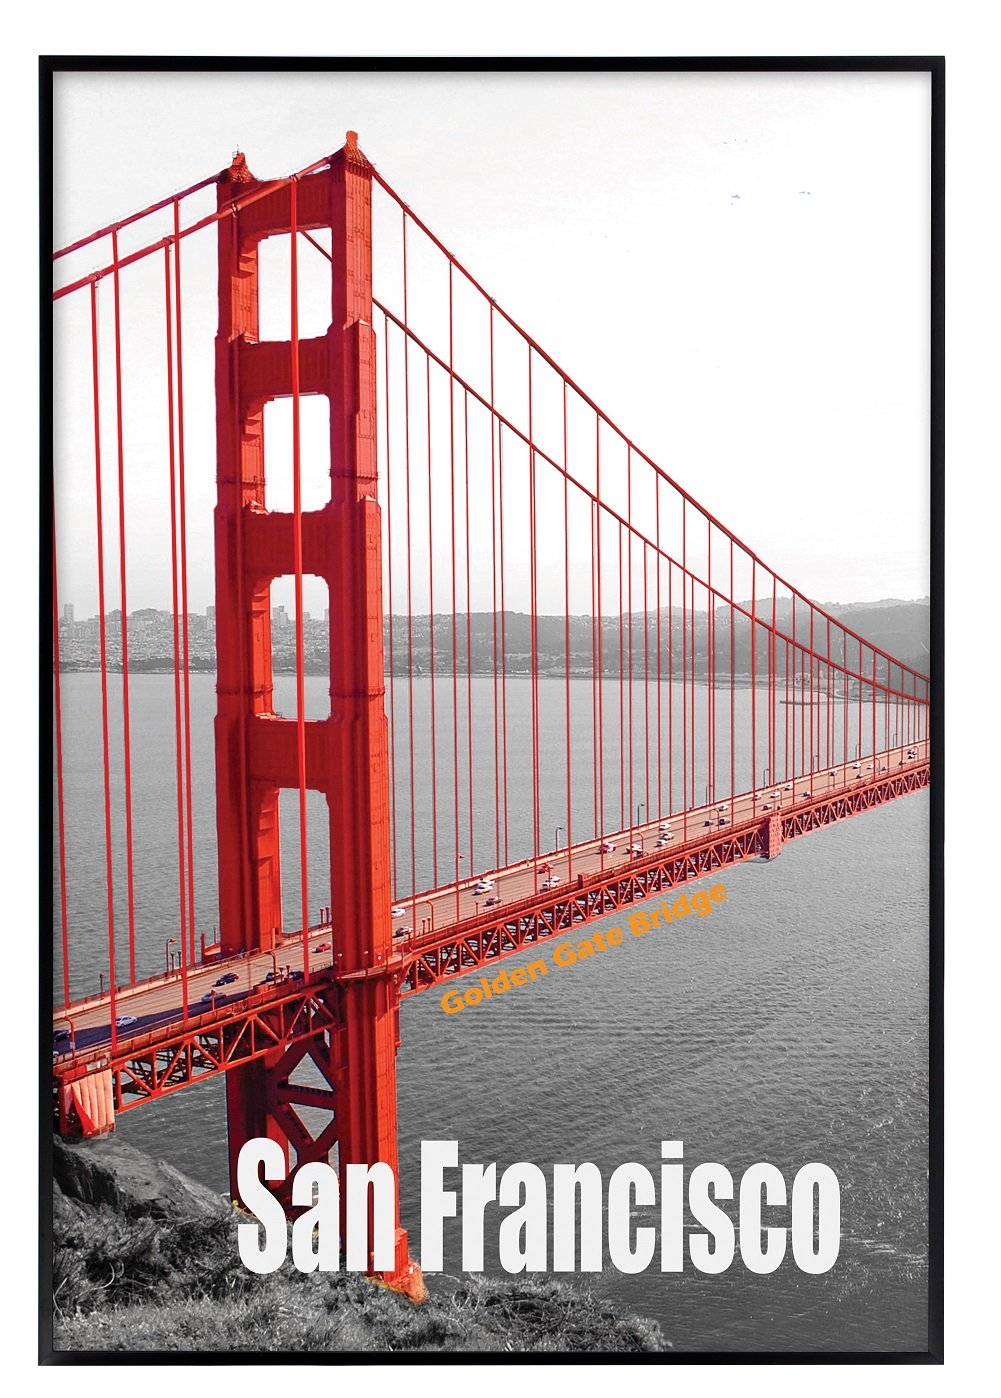 Frametory, 13X19 Poster Frame, Pre-Assembled Black Metal Aluminum, Golden Gate Bridge Gallery Edition (Metal, 13x19)